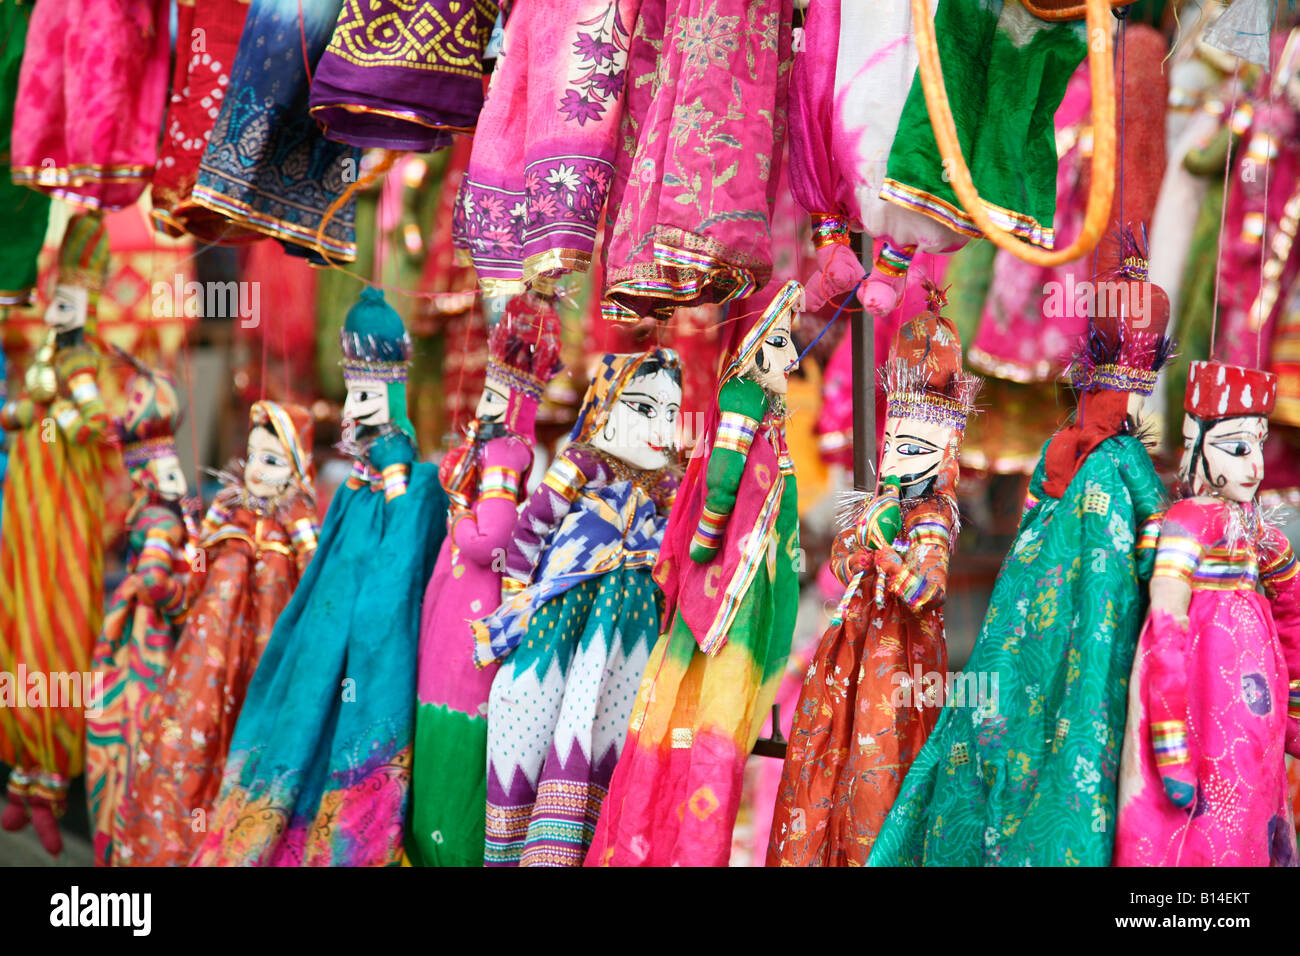 Handicrafts From Rajasthan On Sale In Fort Kochi Market India Stock